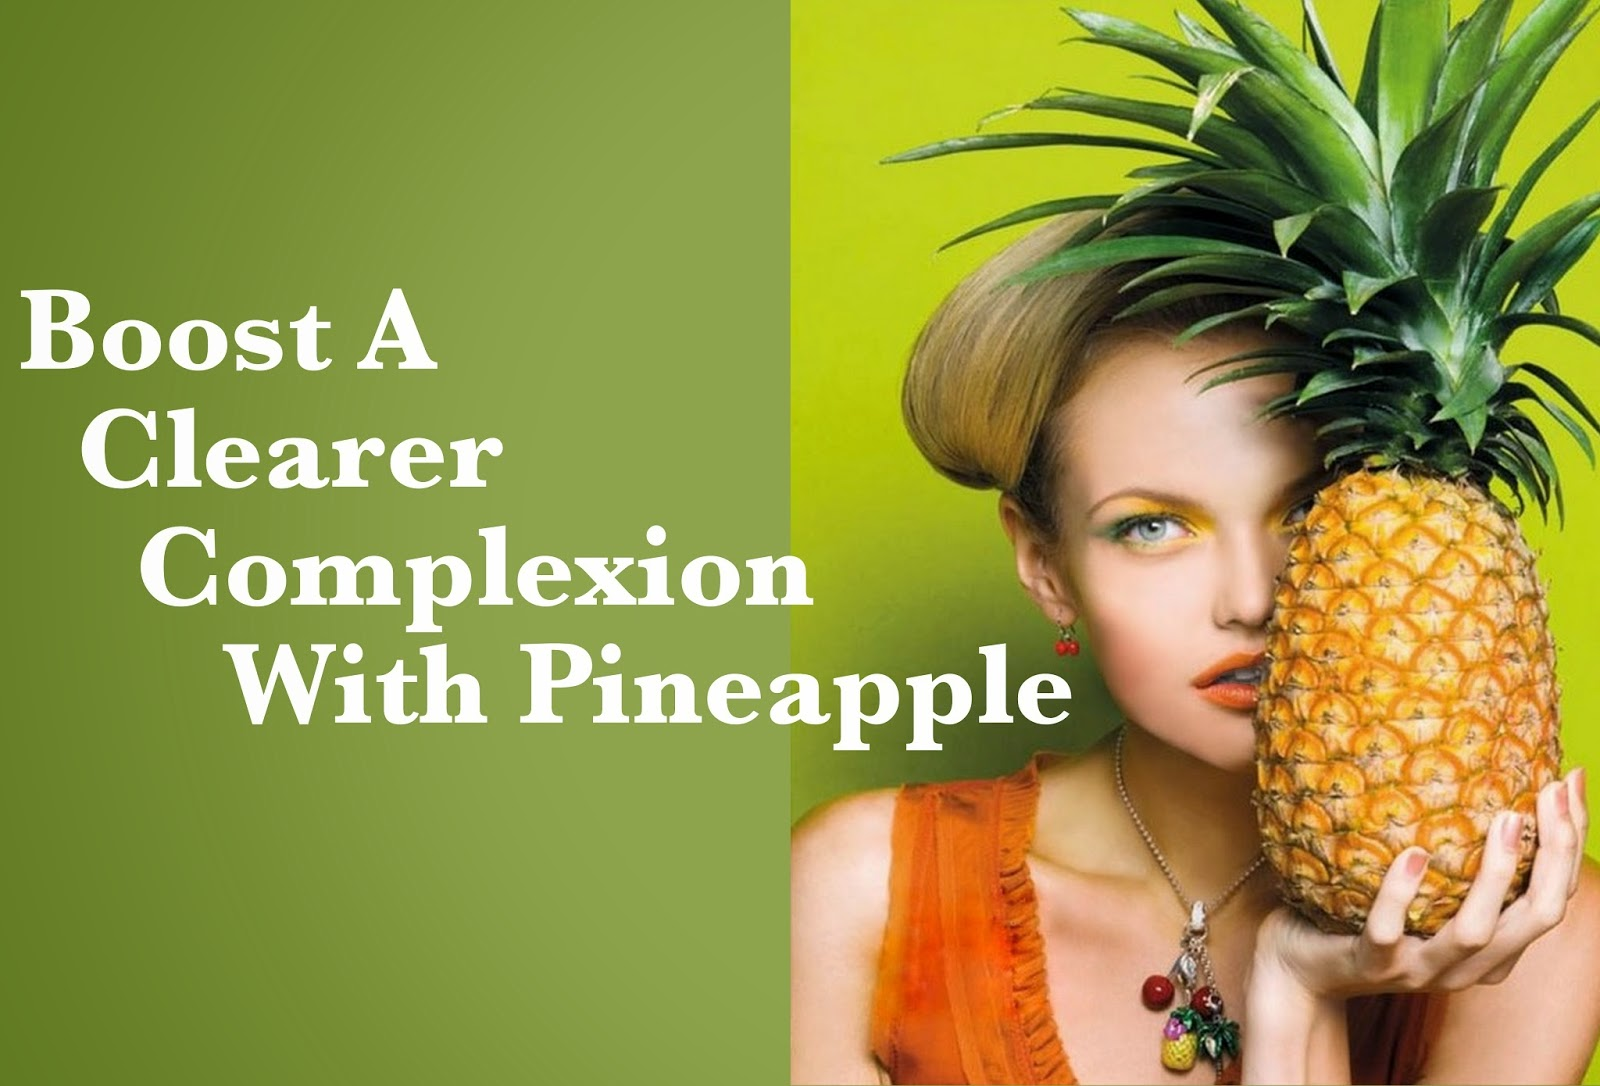 Skin Benefits Of Pineapple